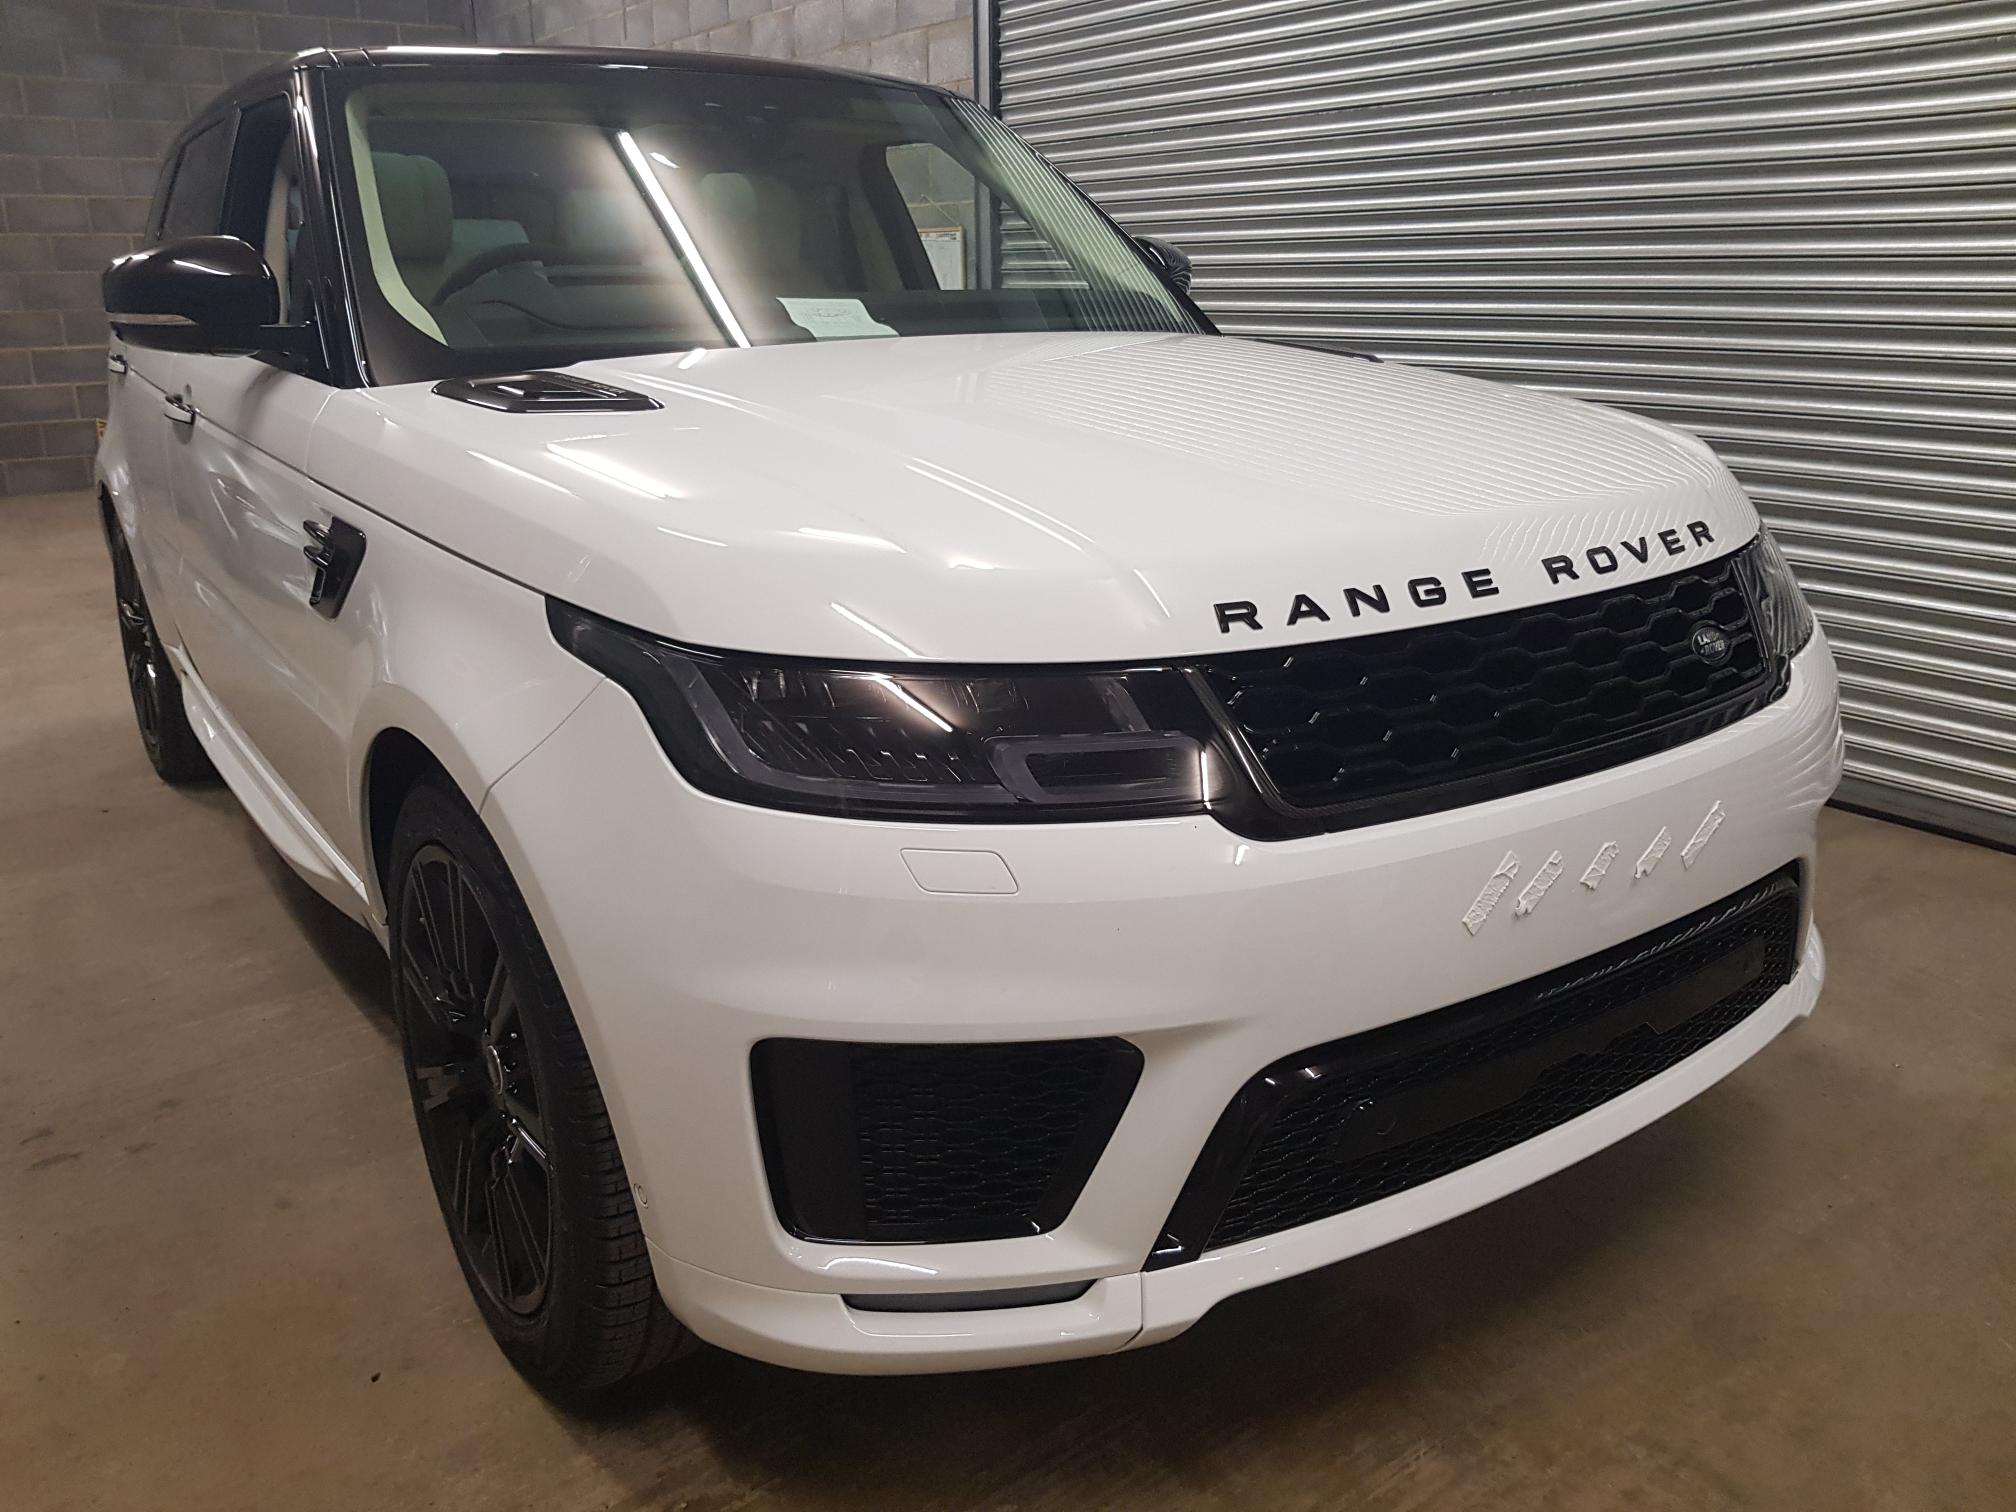 Range Rover Sport Range Rover Sport P400e Plug-in Hybrid Electric Vehicle 5